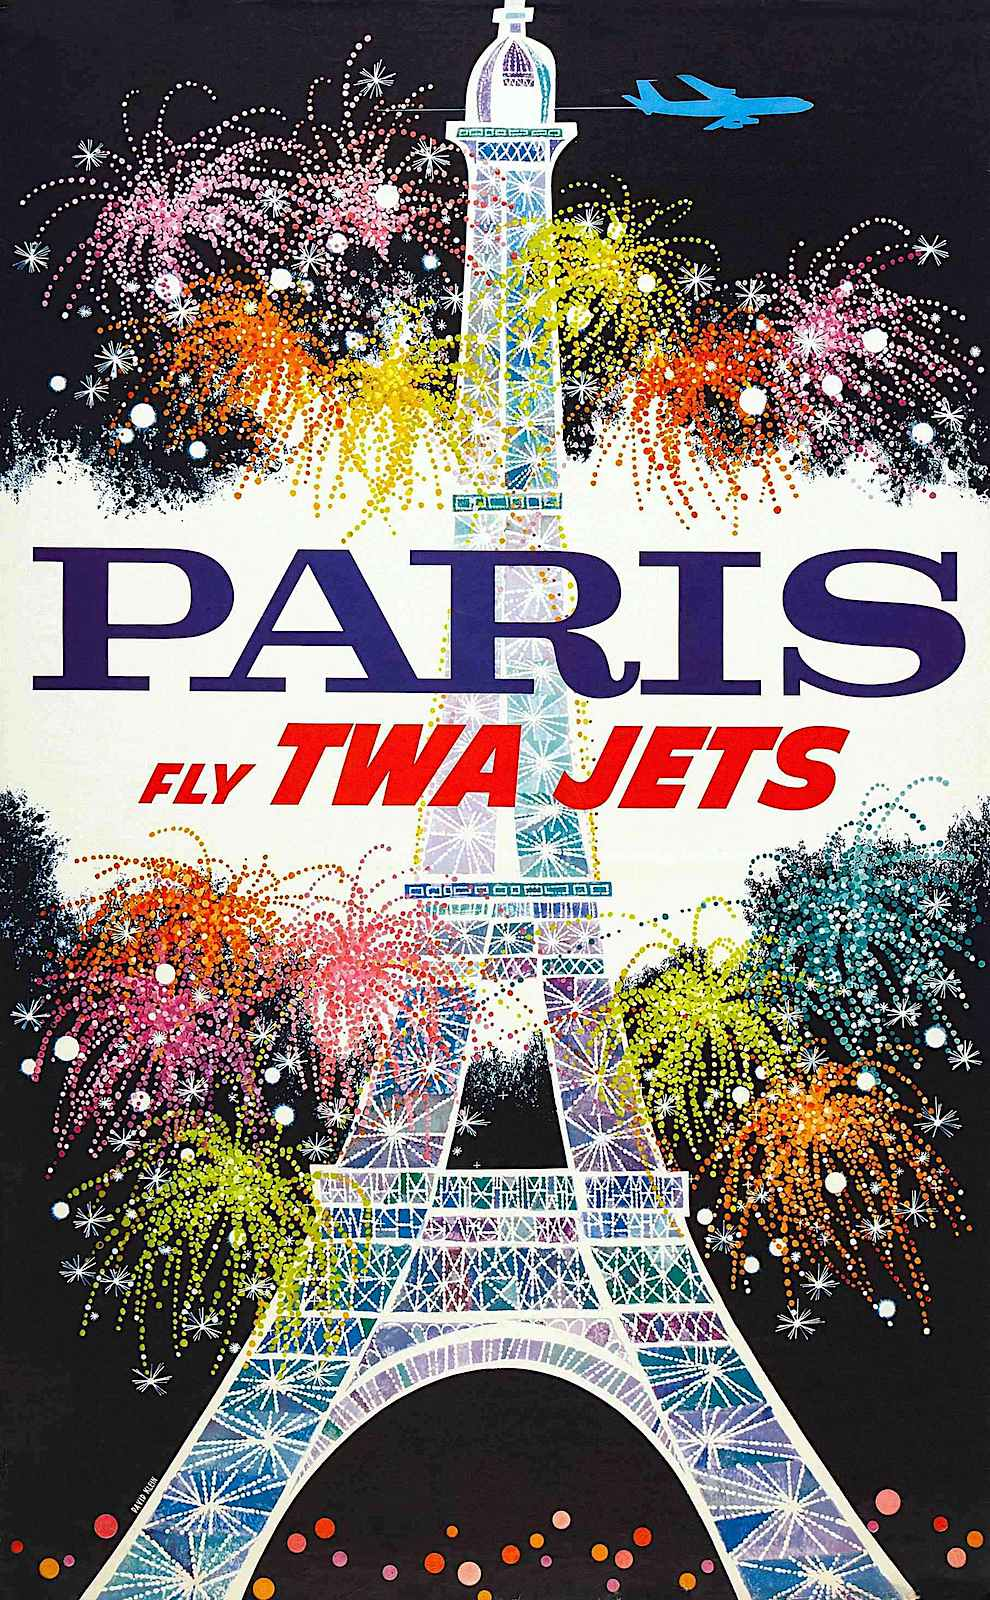 a David Klein 1962 poster for Trans World Airlines, the Eiffel Tower with fireworks